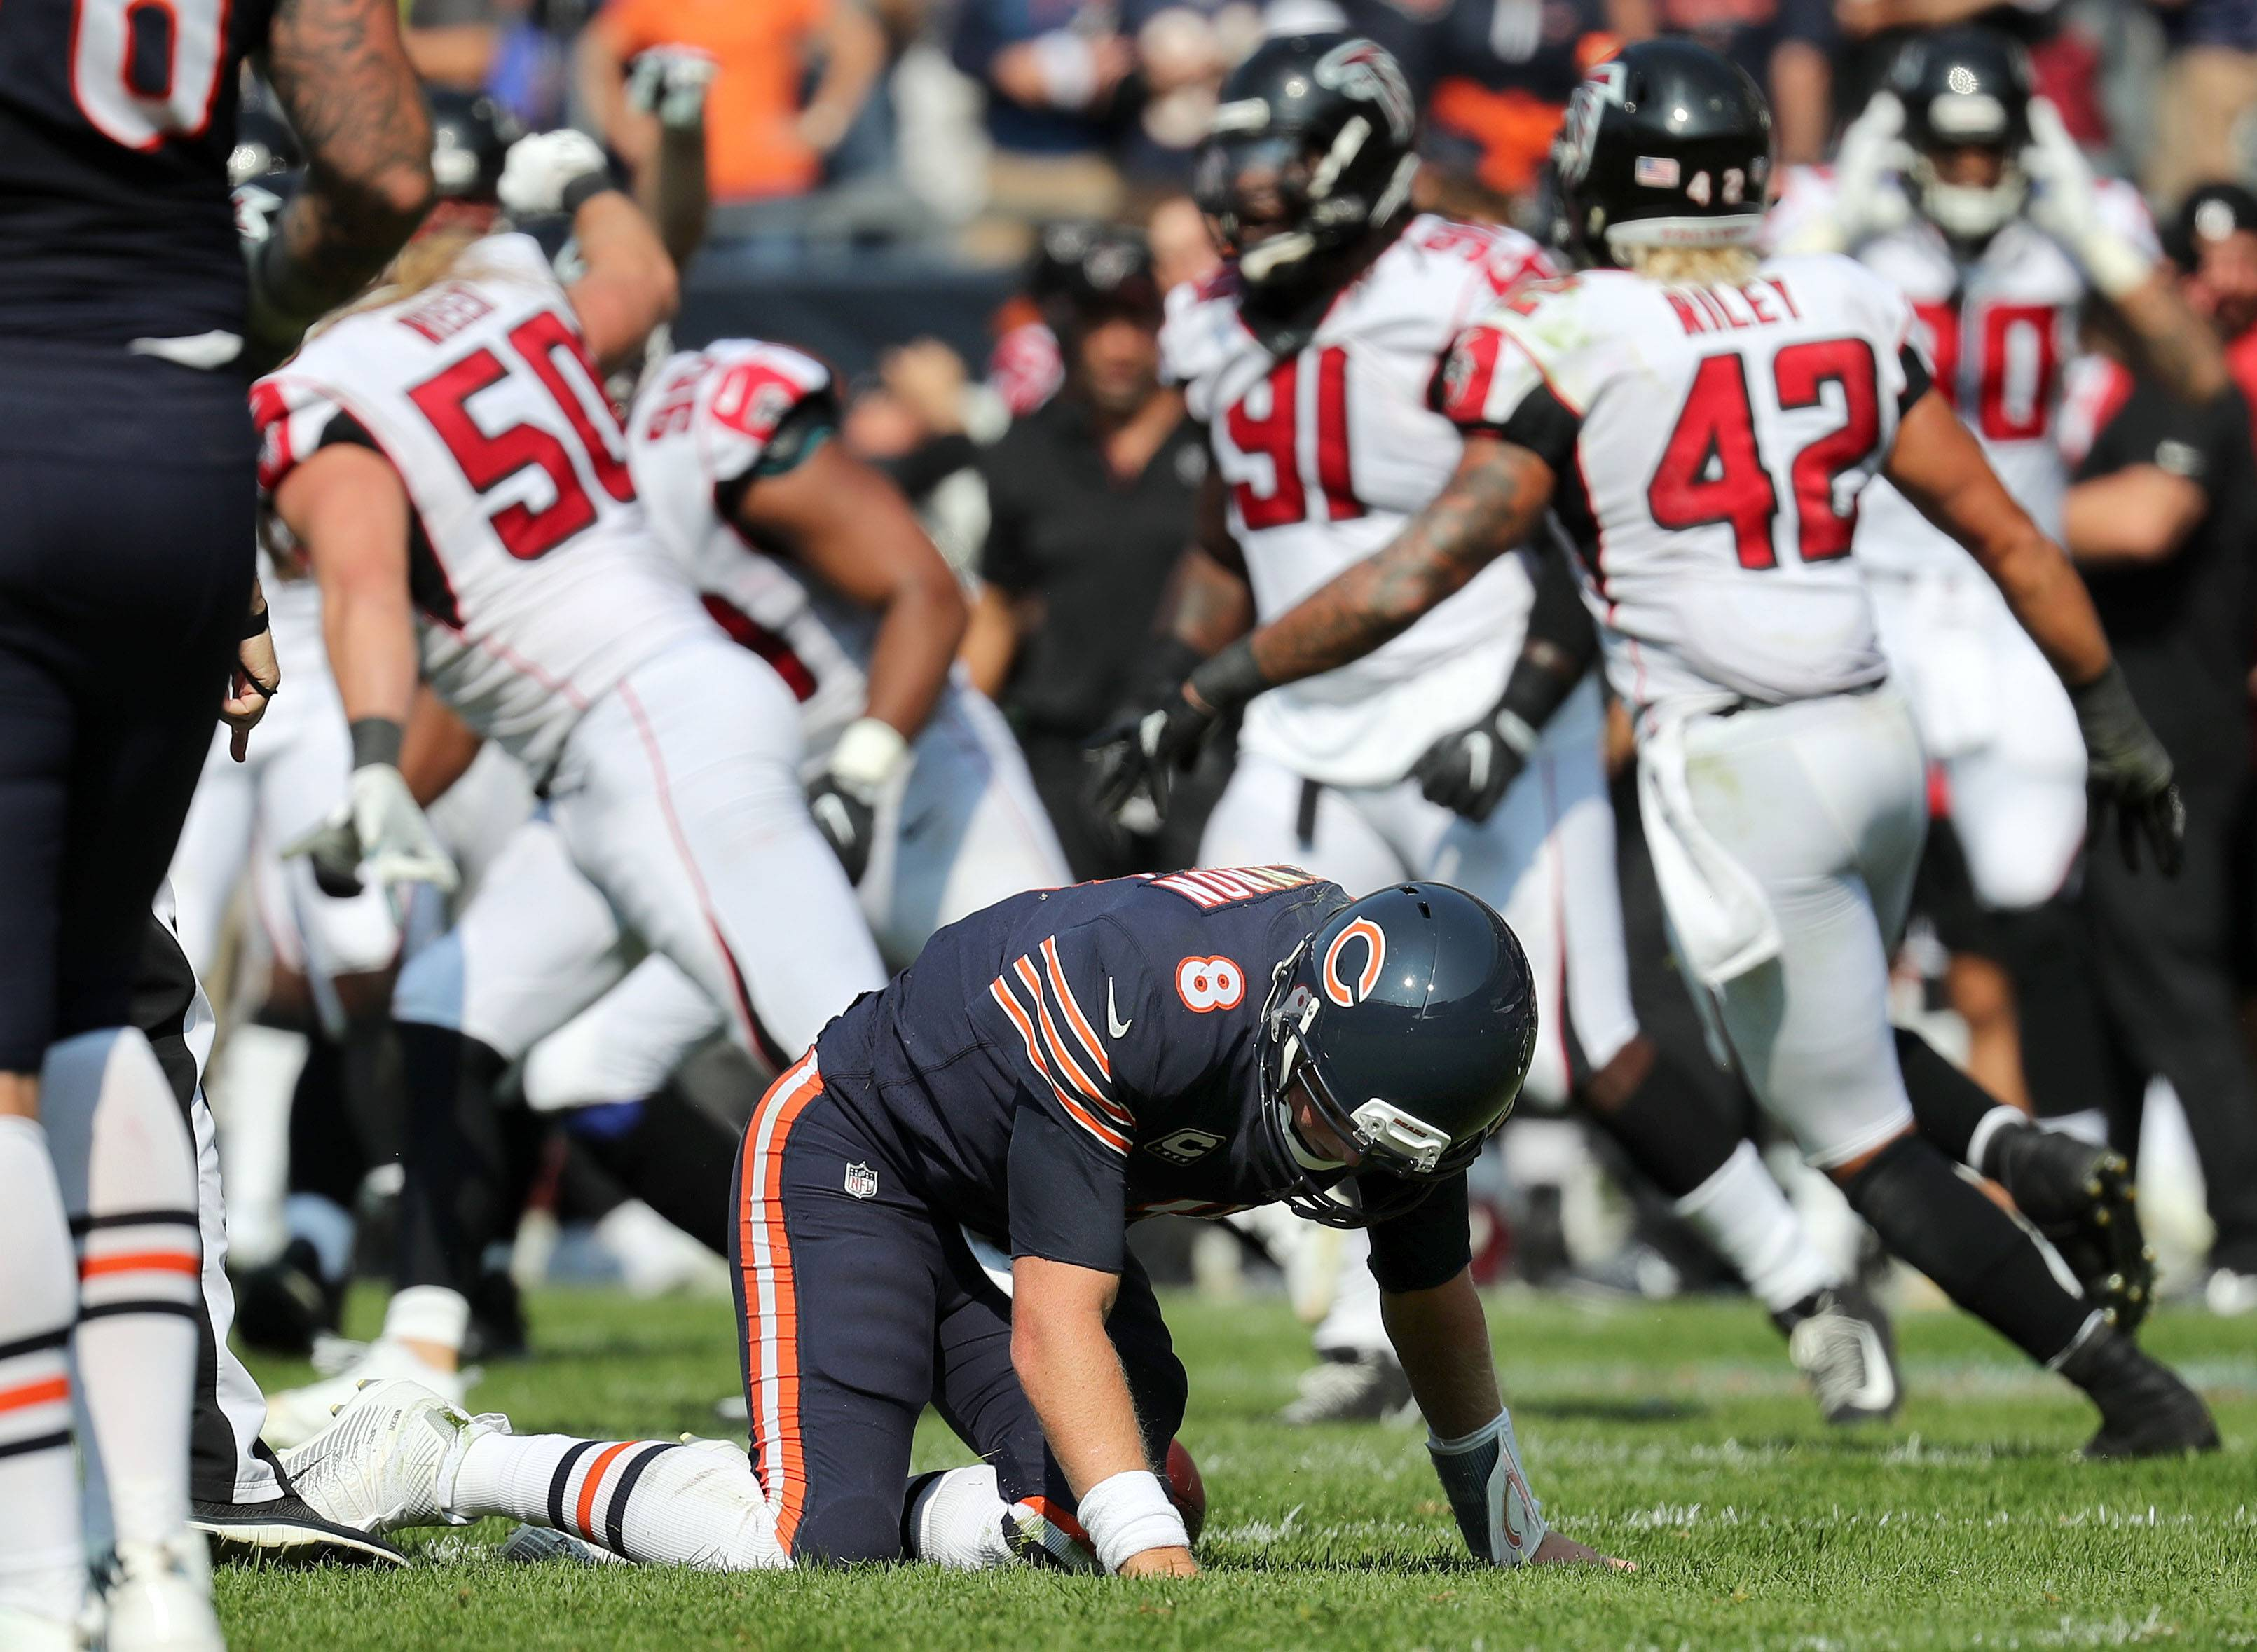 Steve Lundy/slundy@dailyherald.com Chicago Bears quarterback Mike Glennon reacts after getting sacked to end the game during their game against the Atlanta Falcons Sunday, September 10, 2017 at Soldier Field on Chicago.